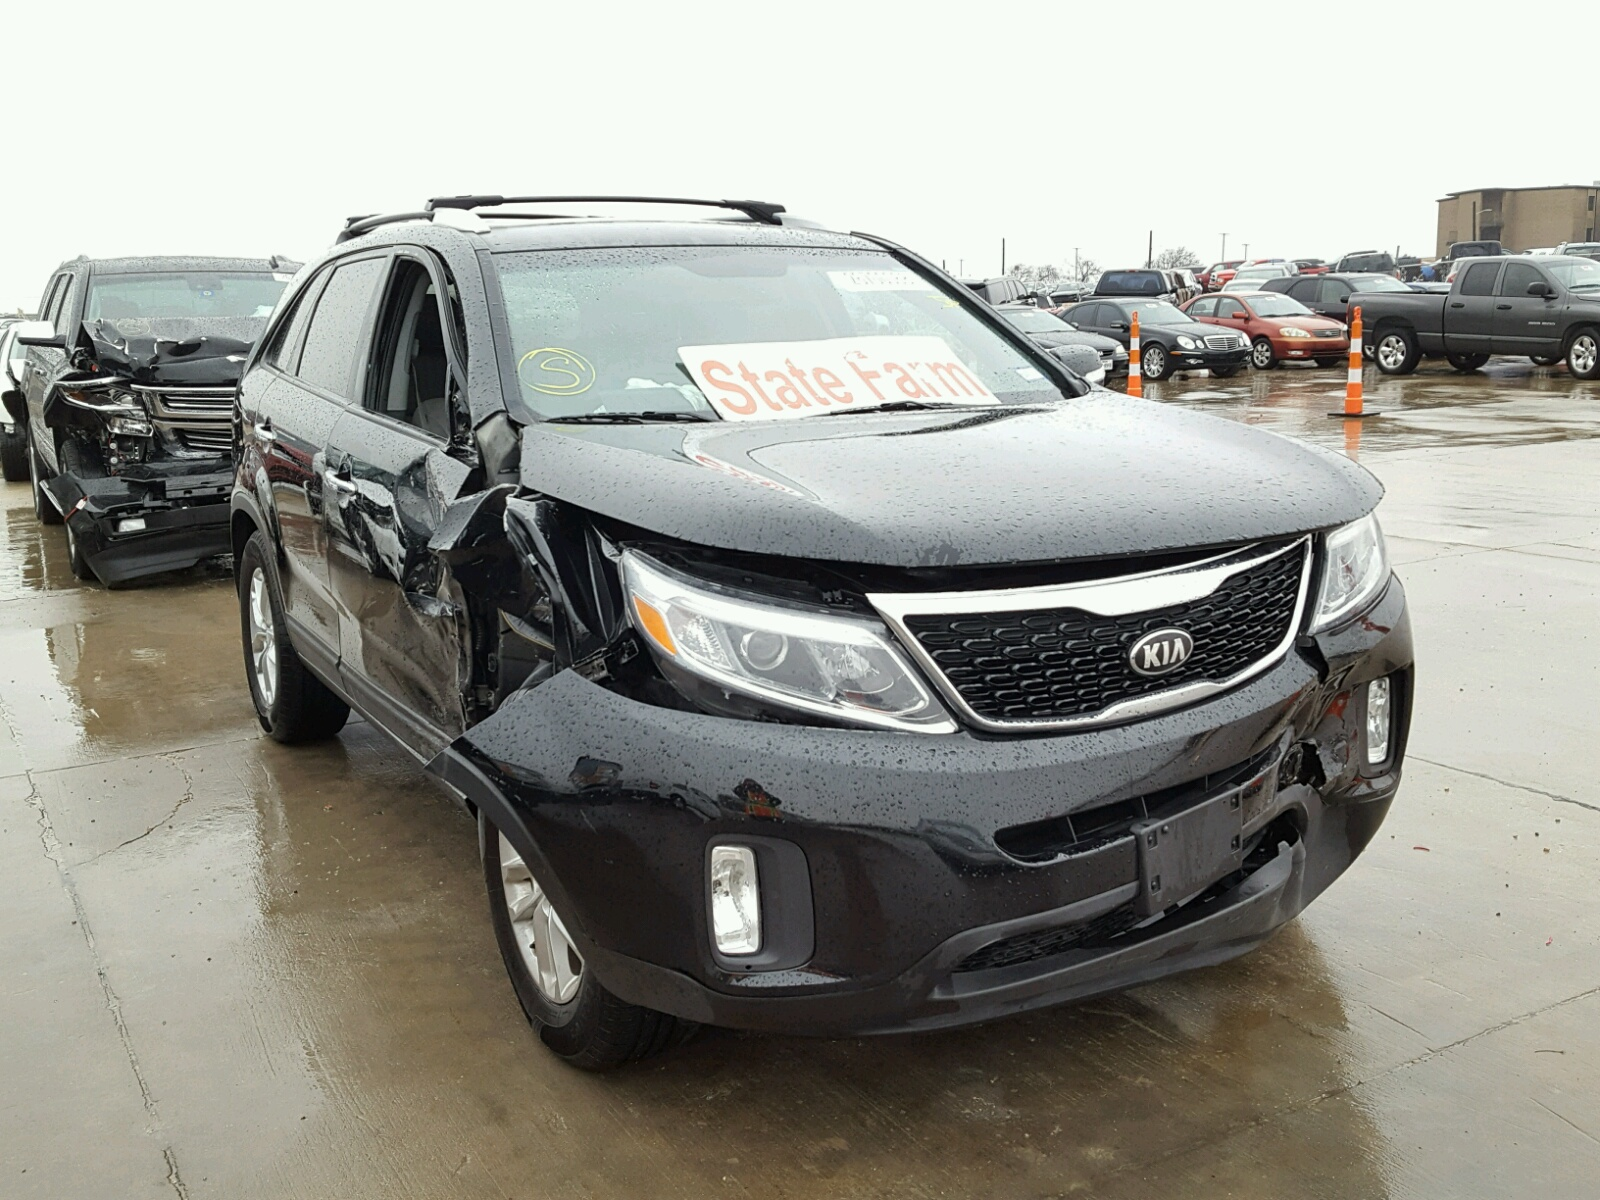 en title tx dallas kia in view online copart on lot ex vehicle sale auctions salvage left optima gray auto carfinder